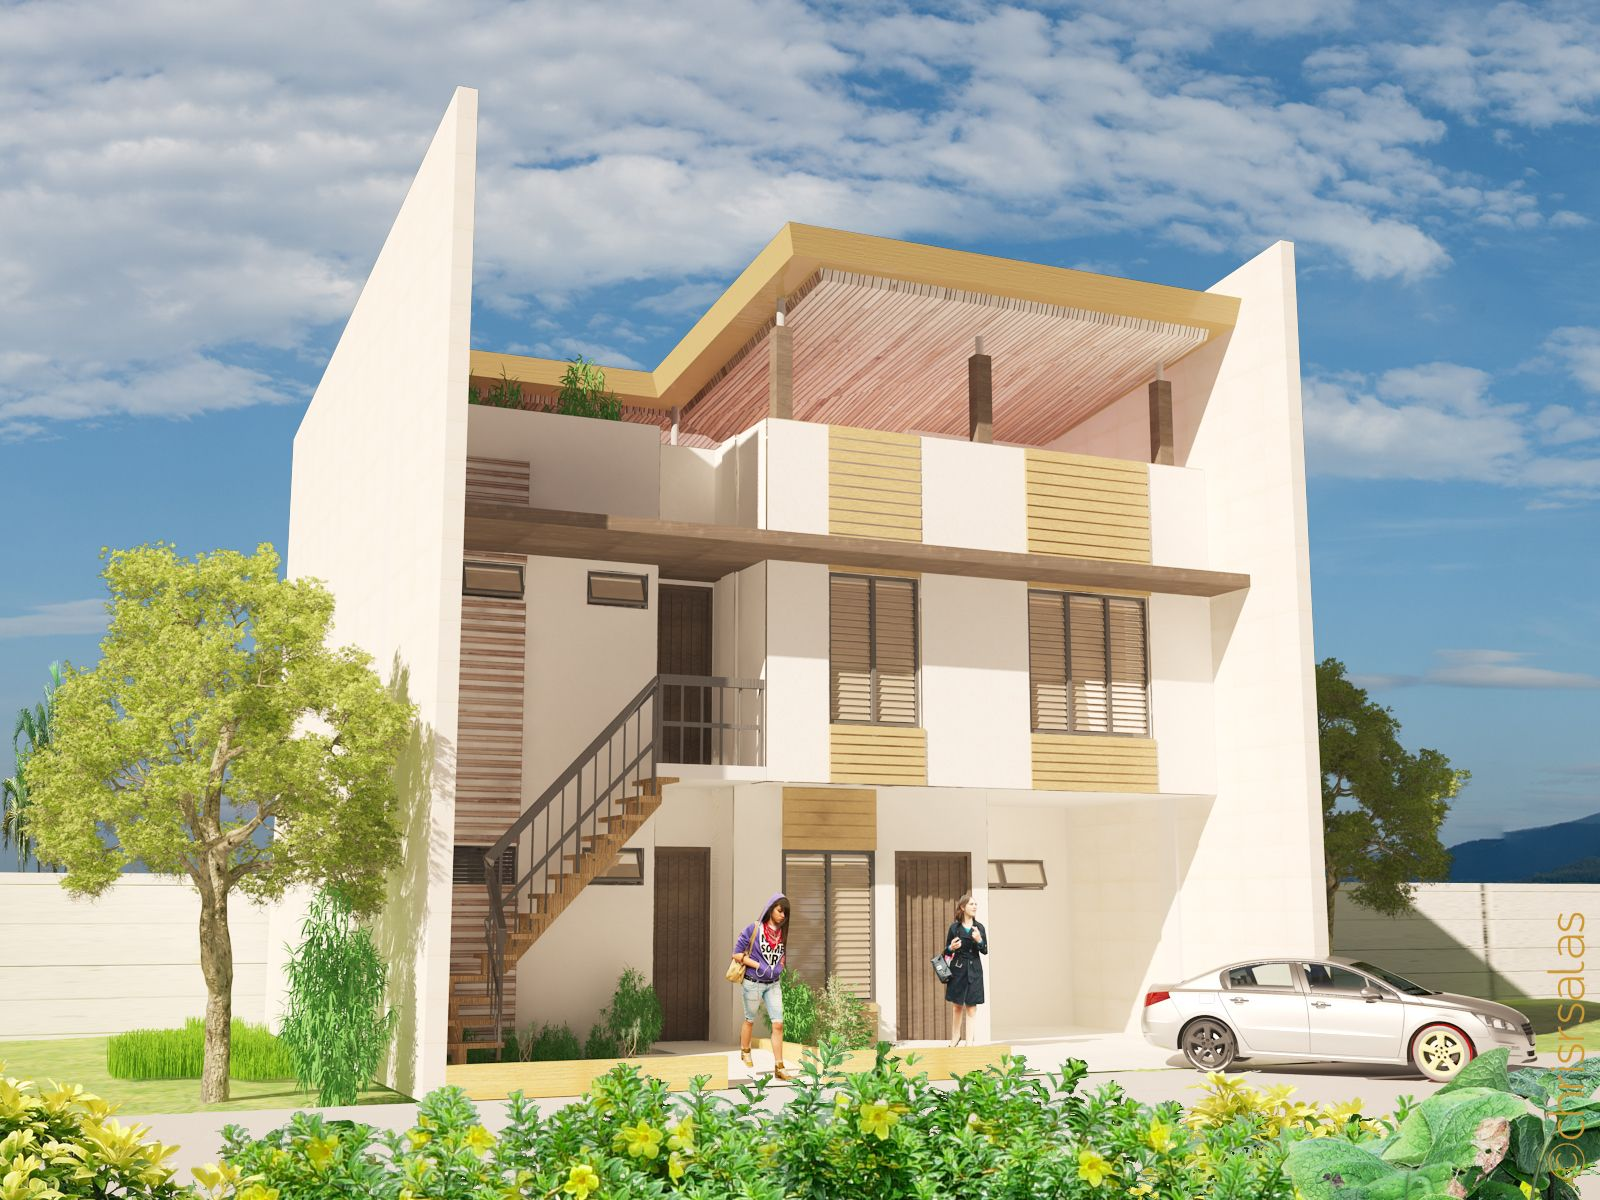 Crib for sale in davao city - Casa Uno A Two Storey Townhouse With Roof Deck And Two Units Of Bachelor S Pad Located At Davao City The First House That Was Commissioned To Me